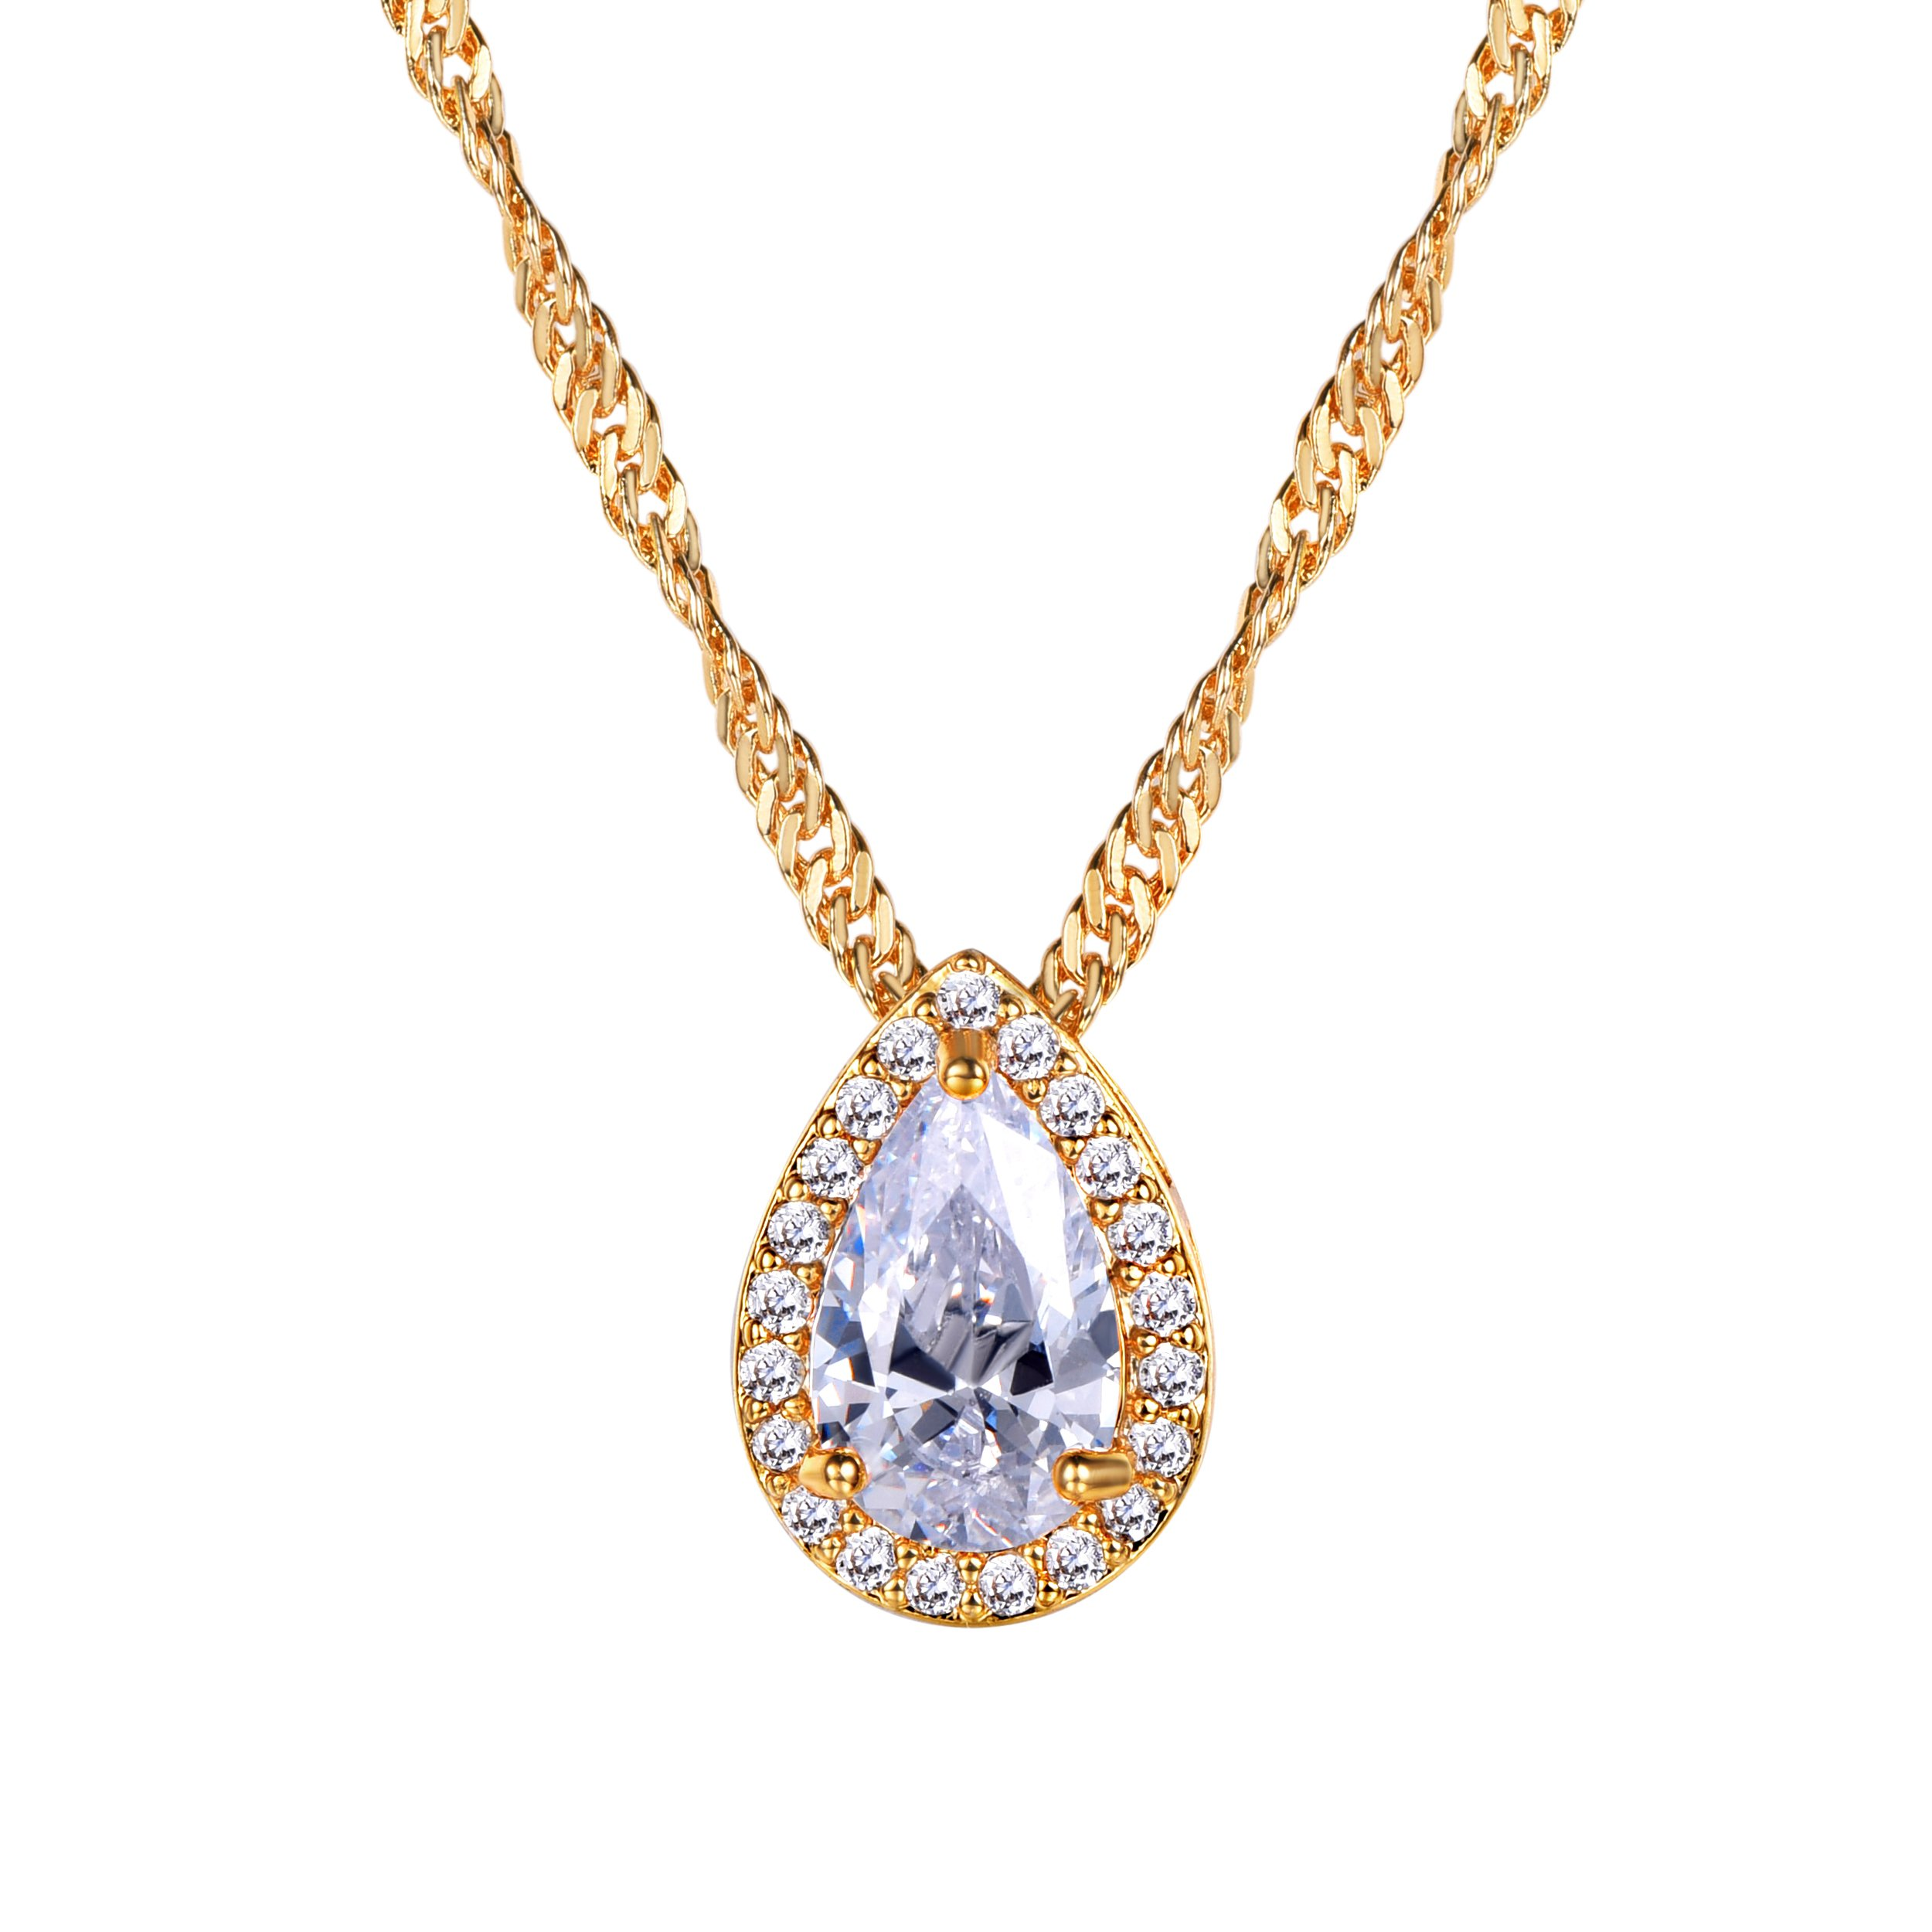 Pearl-shaped Briolette Cubic Zirconia Teardrop Pendant Necklace with Water Wave Chain, Gold Plated Crystal Bridal/Wedding Necklace